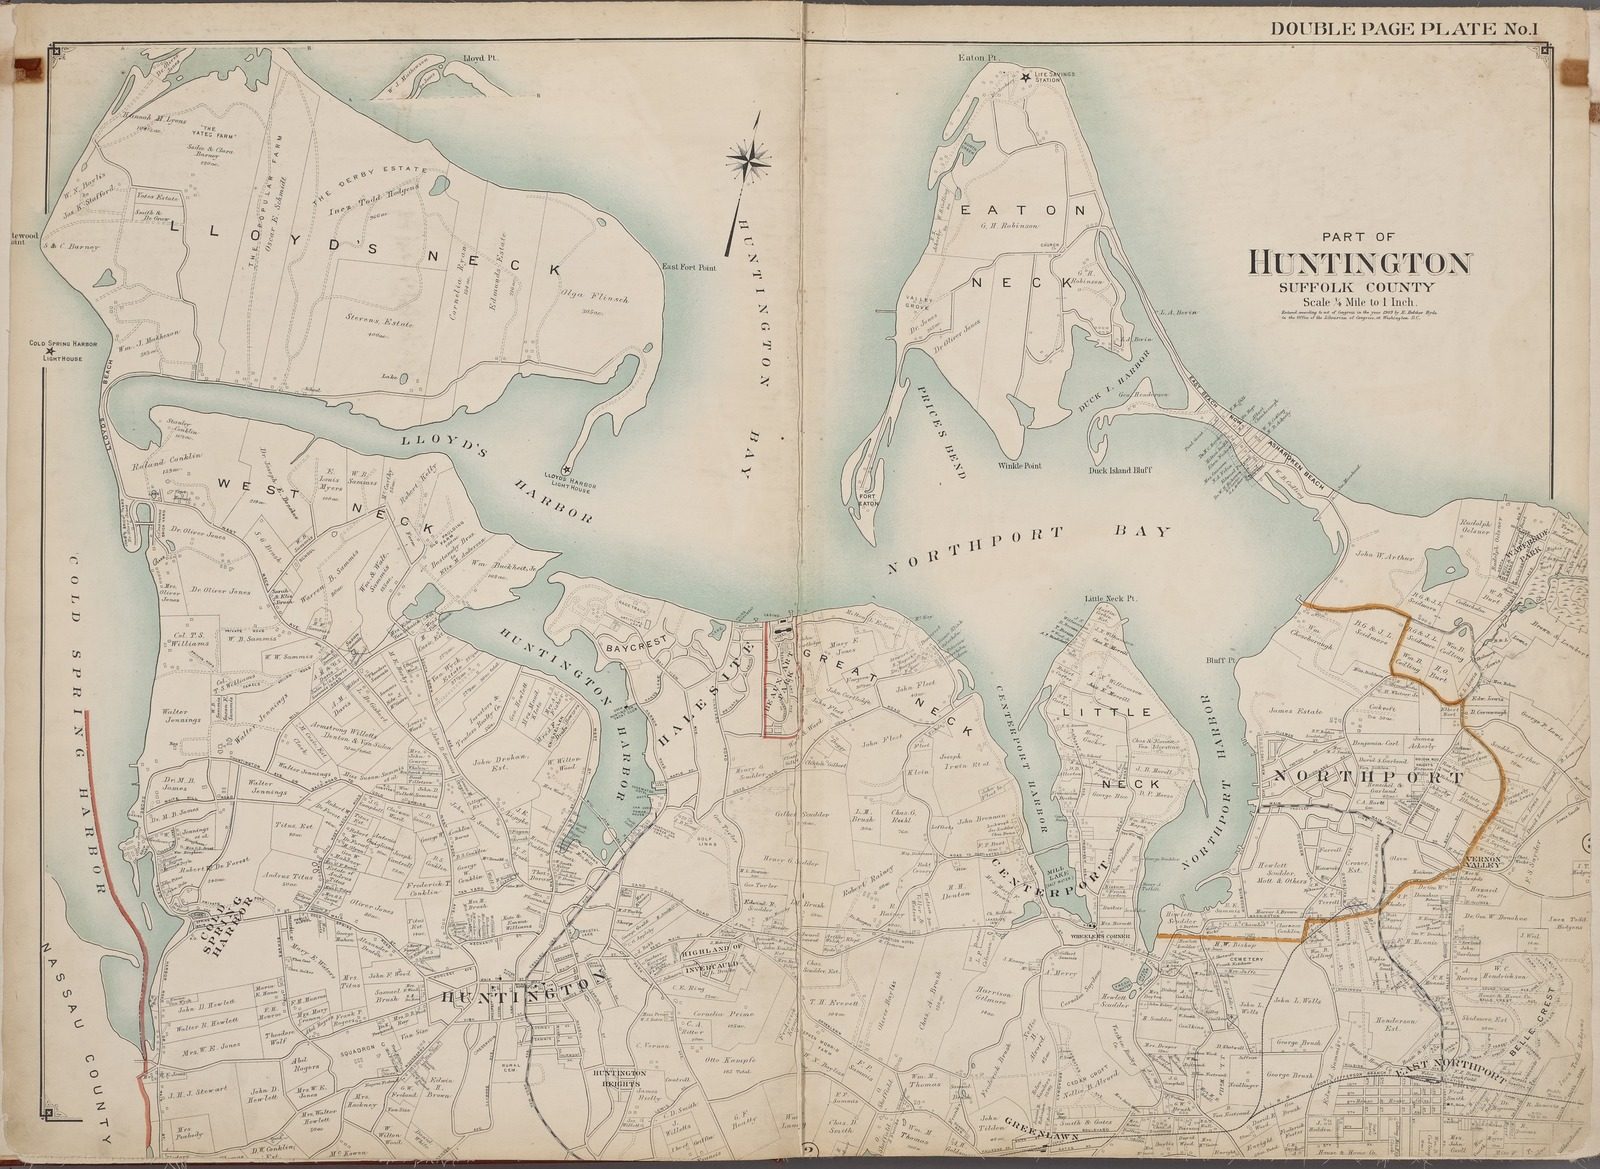 Suffolk County, V. 2, Double Page Plate No. 1 [Map bounded by Lloyds Neck, Eaton Neck, North Port, East North Port, Little Neck, Center Port, Greenlawn, Huntington, West Neck]